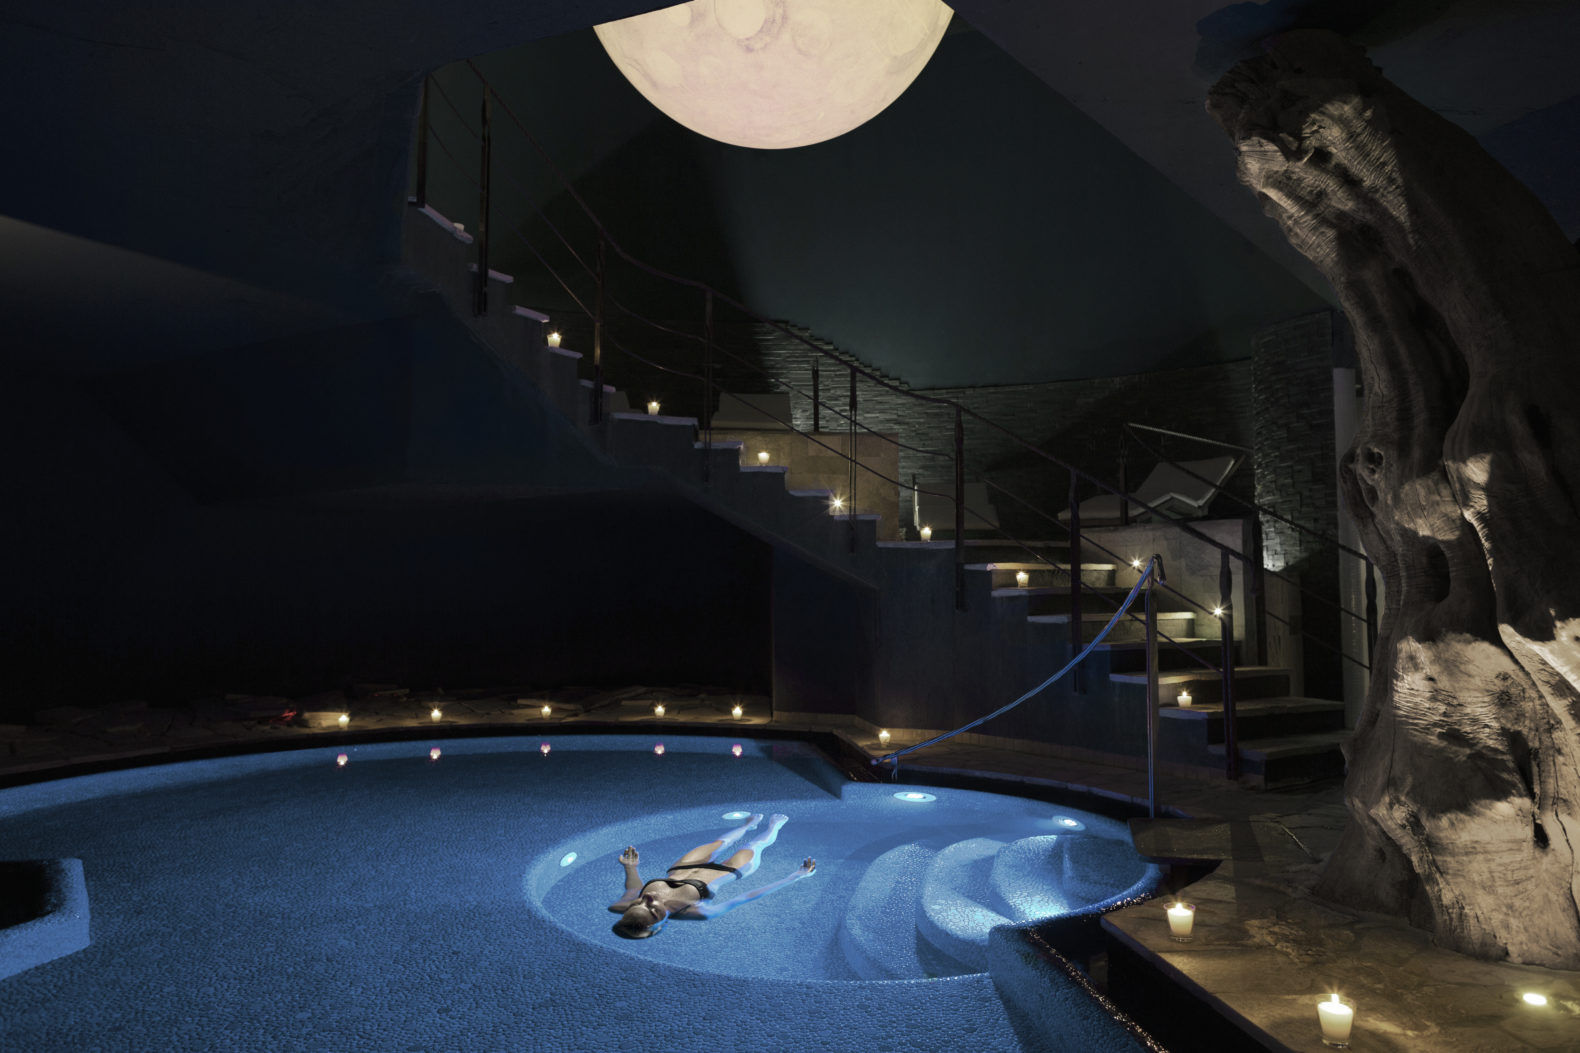 indoor-pool-salt-water-lake-woman-floating-experience-adventure-candlelight-lefay-resorts-lago-di-garda-italy